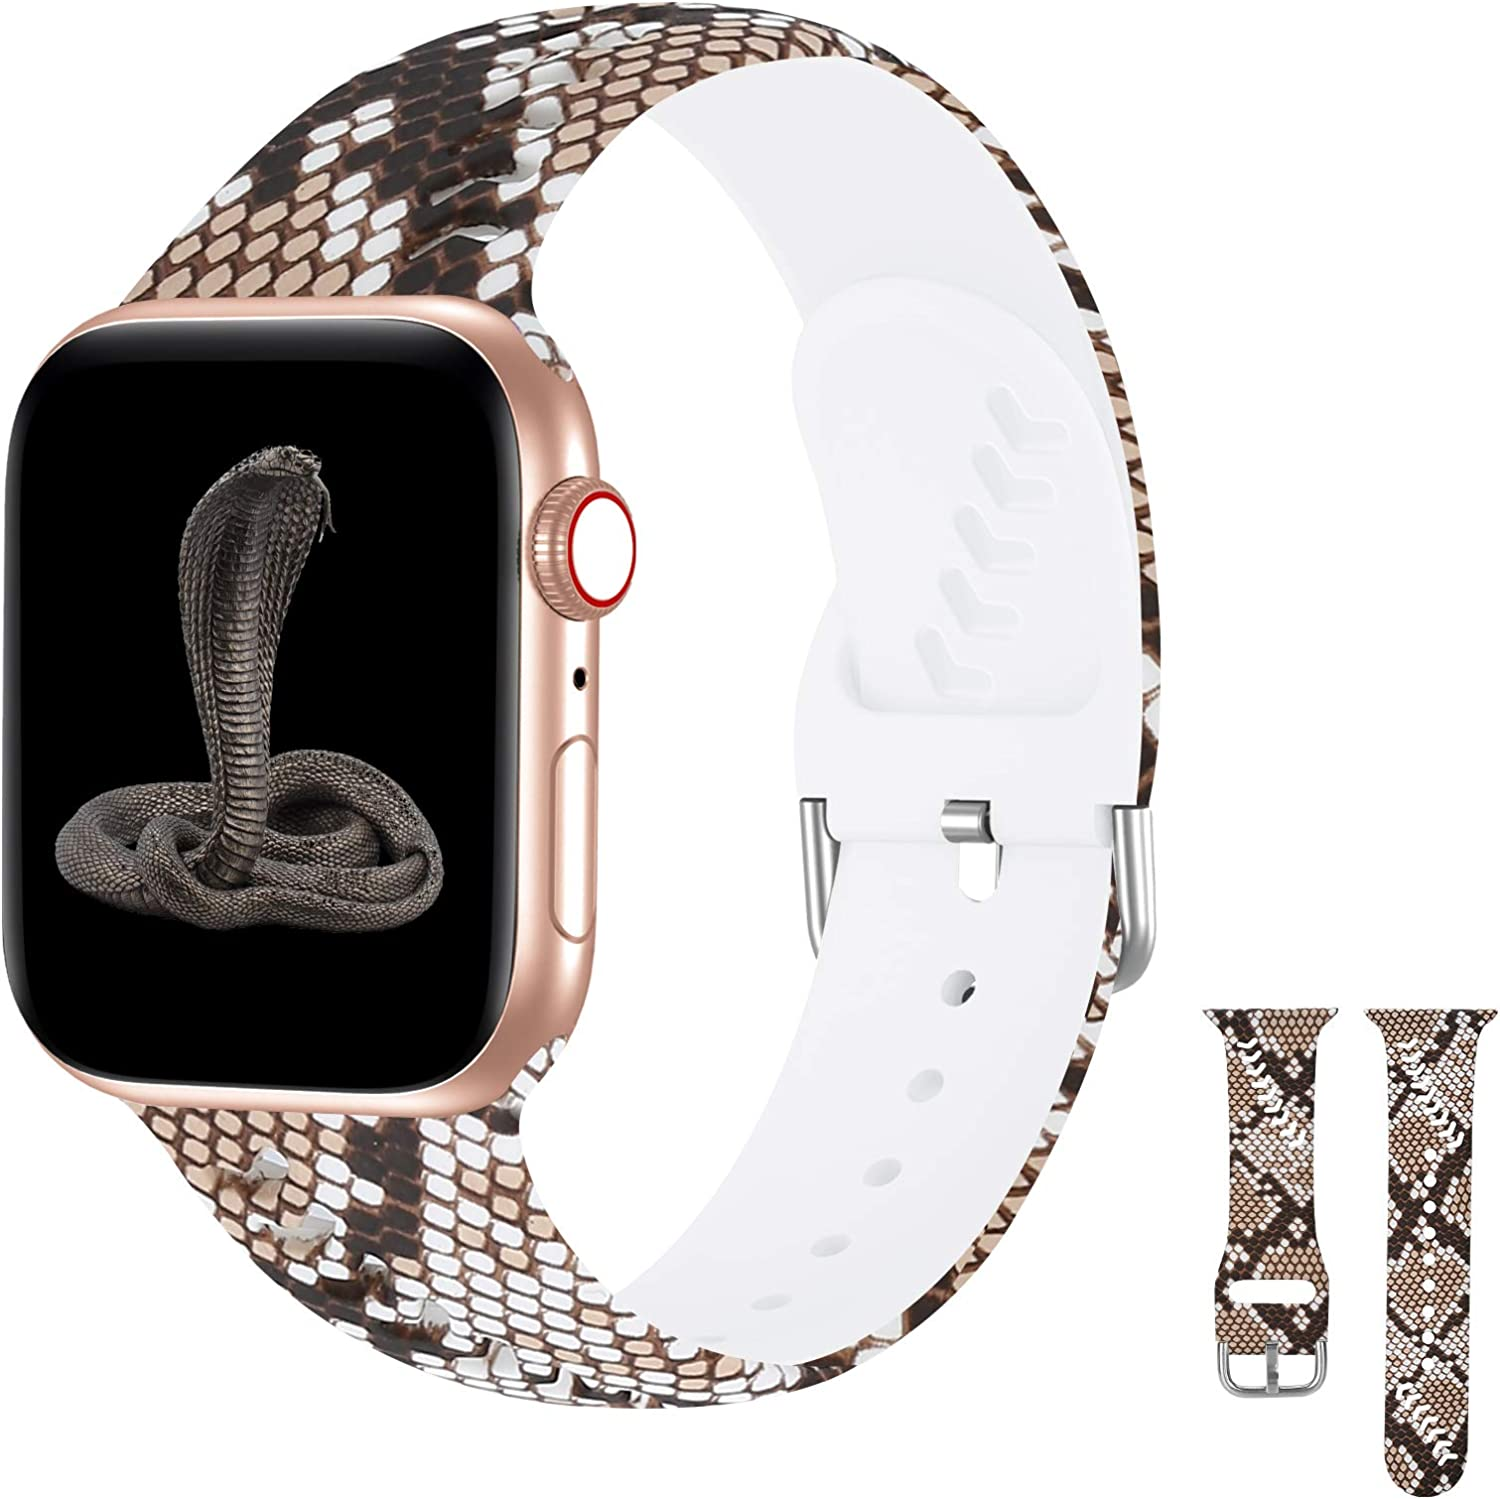 iWabcertoo Compatible with Apple Watch Band 38mm 40mm Series 3 Series 5, Silicone Floral Fadeless Printed iWatch Bands 38mm 40mm Womens Men Compatible for iWatch SE Series 6 5 4 3 2 1, Snakeskin